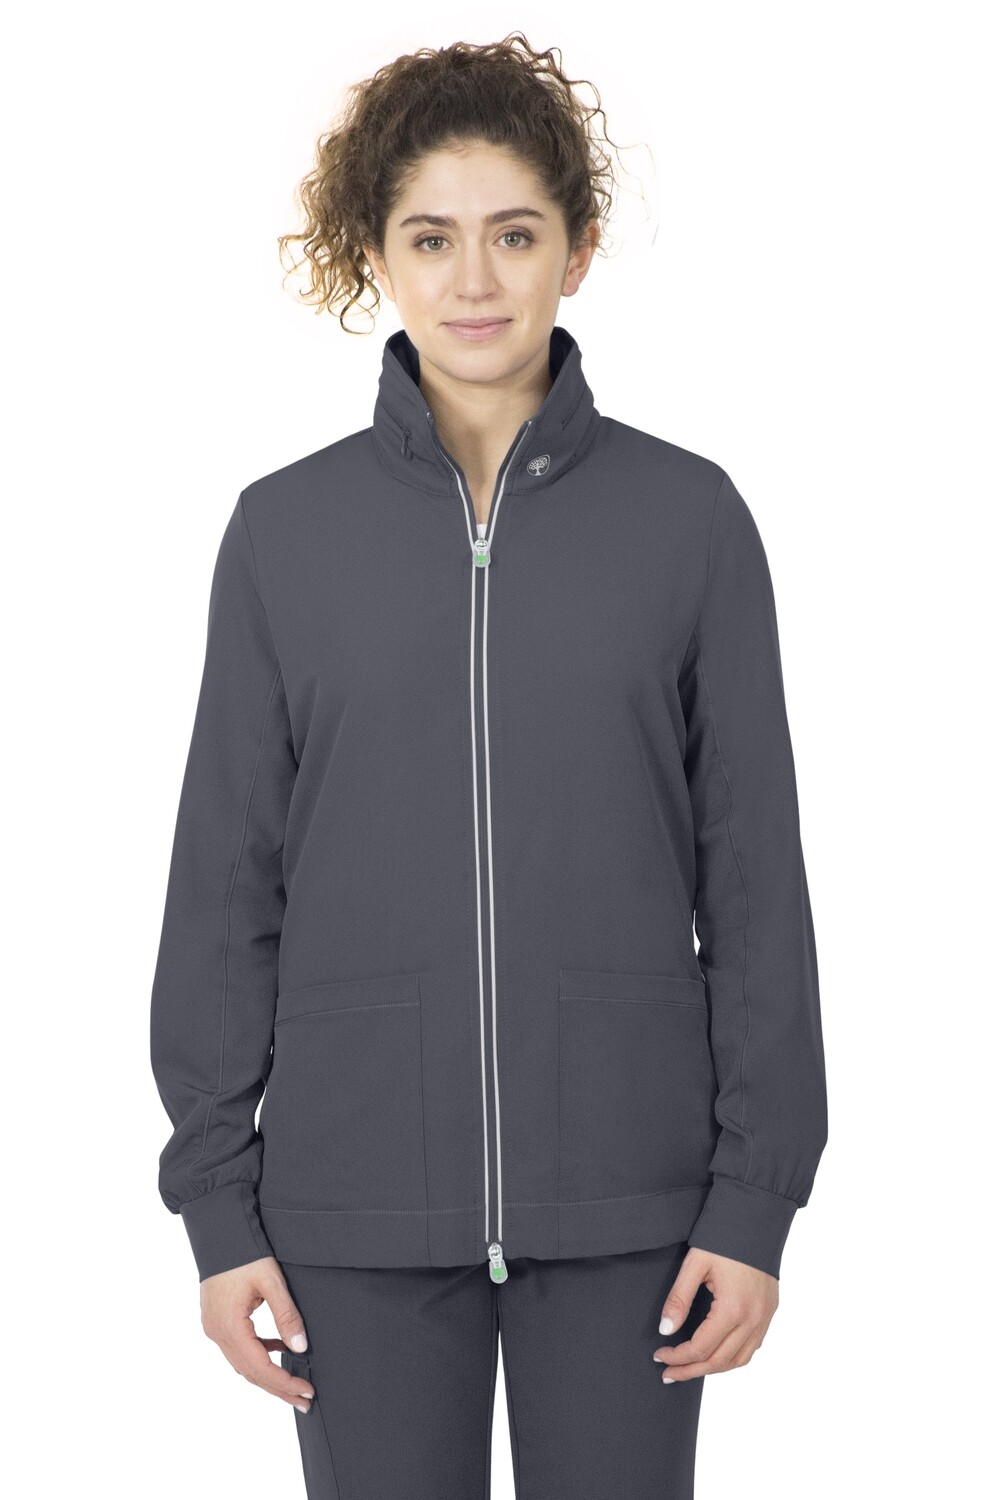 5065 CARRIE JACKET - PL XL PEWTER